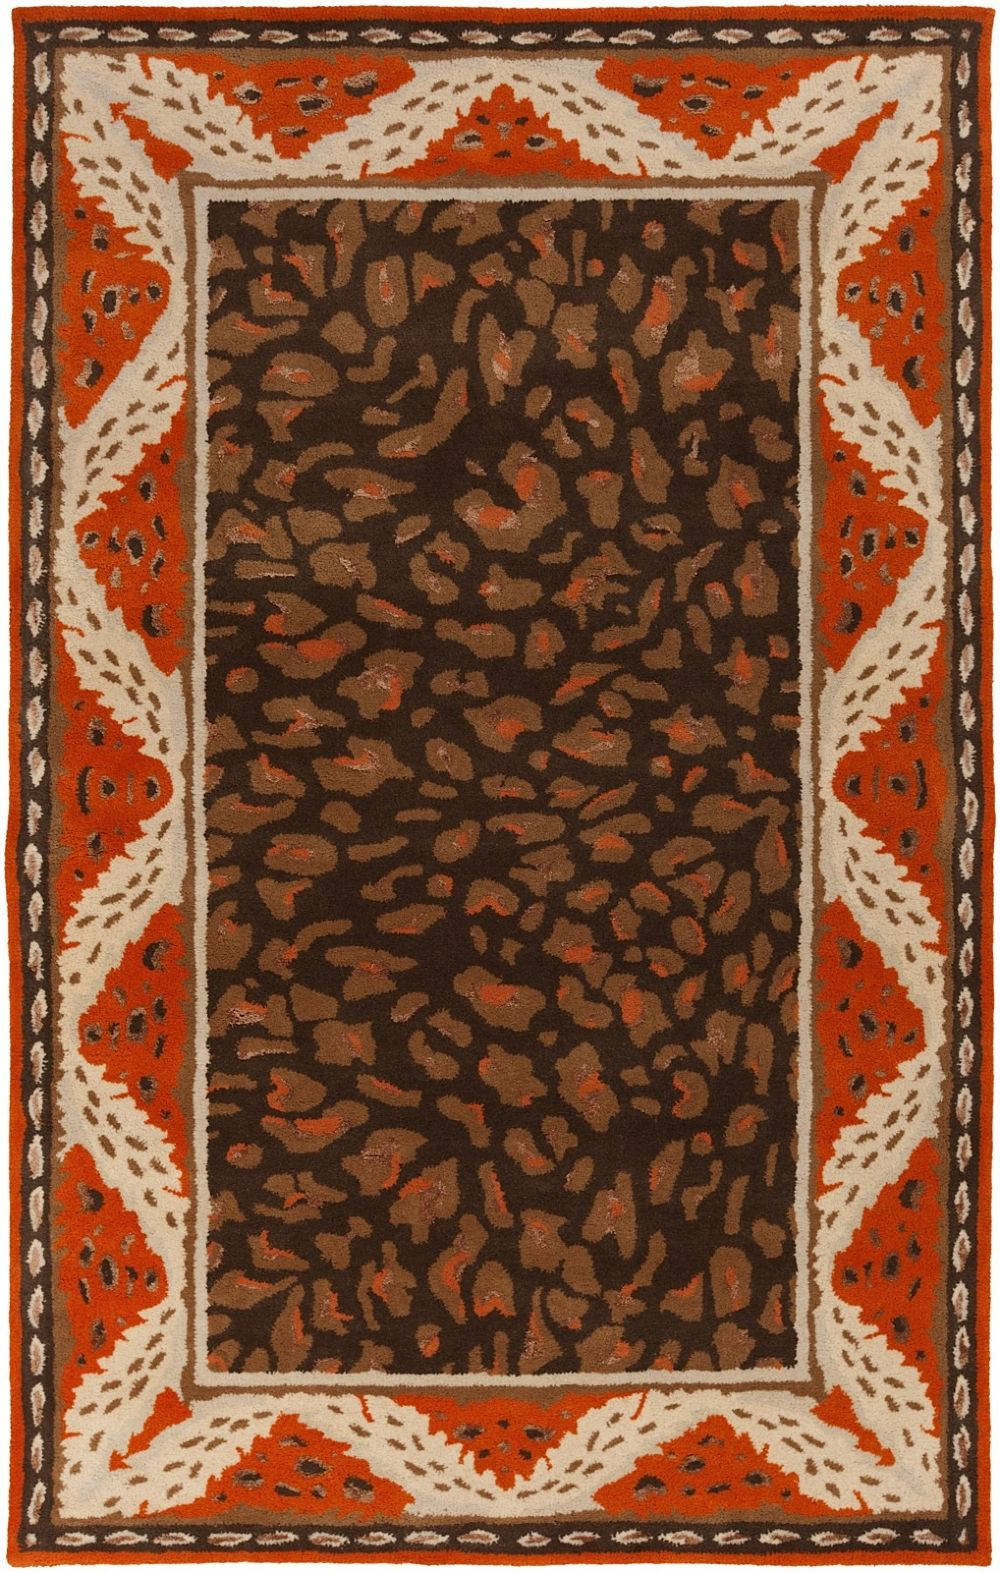 surya paris animal inspirations area rug collection